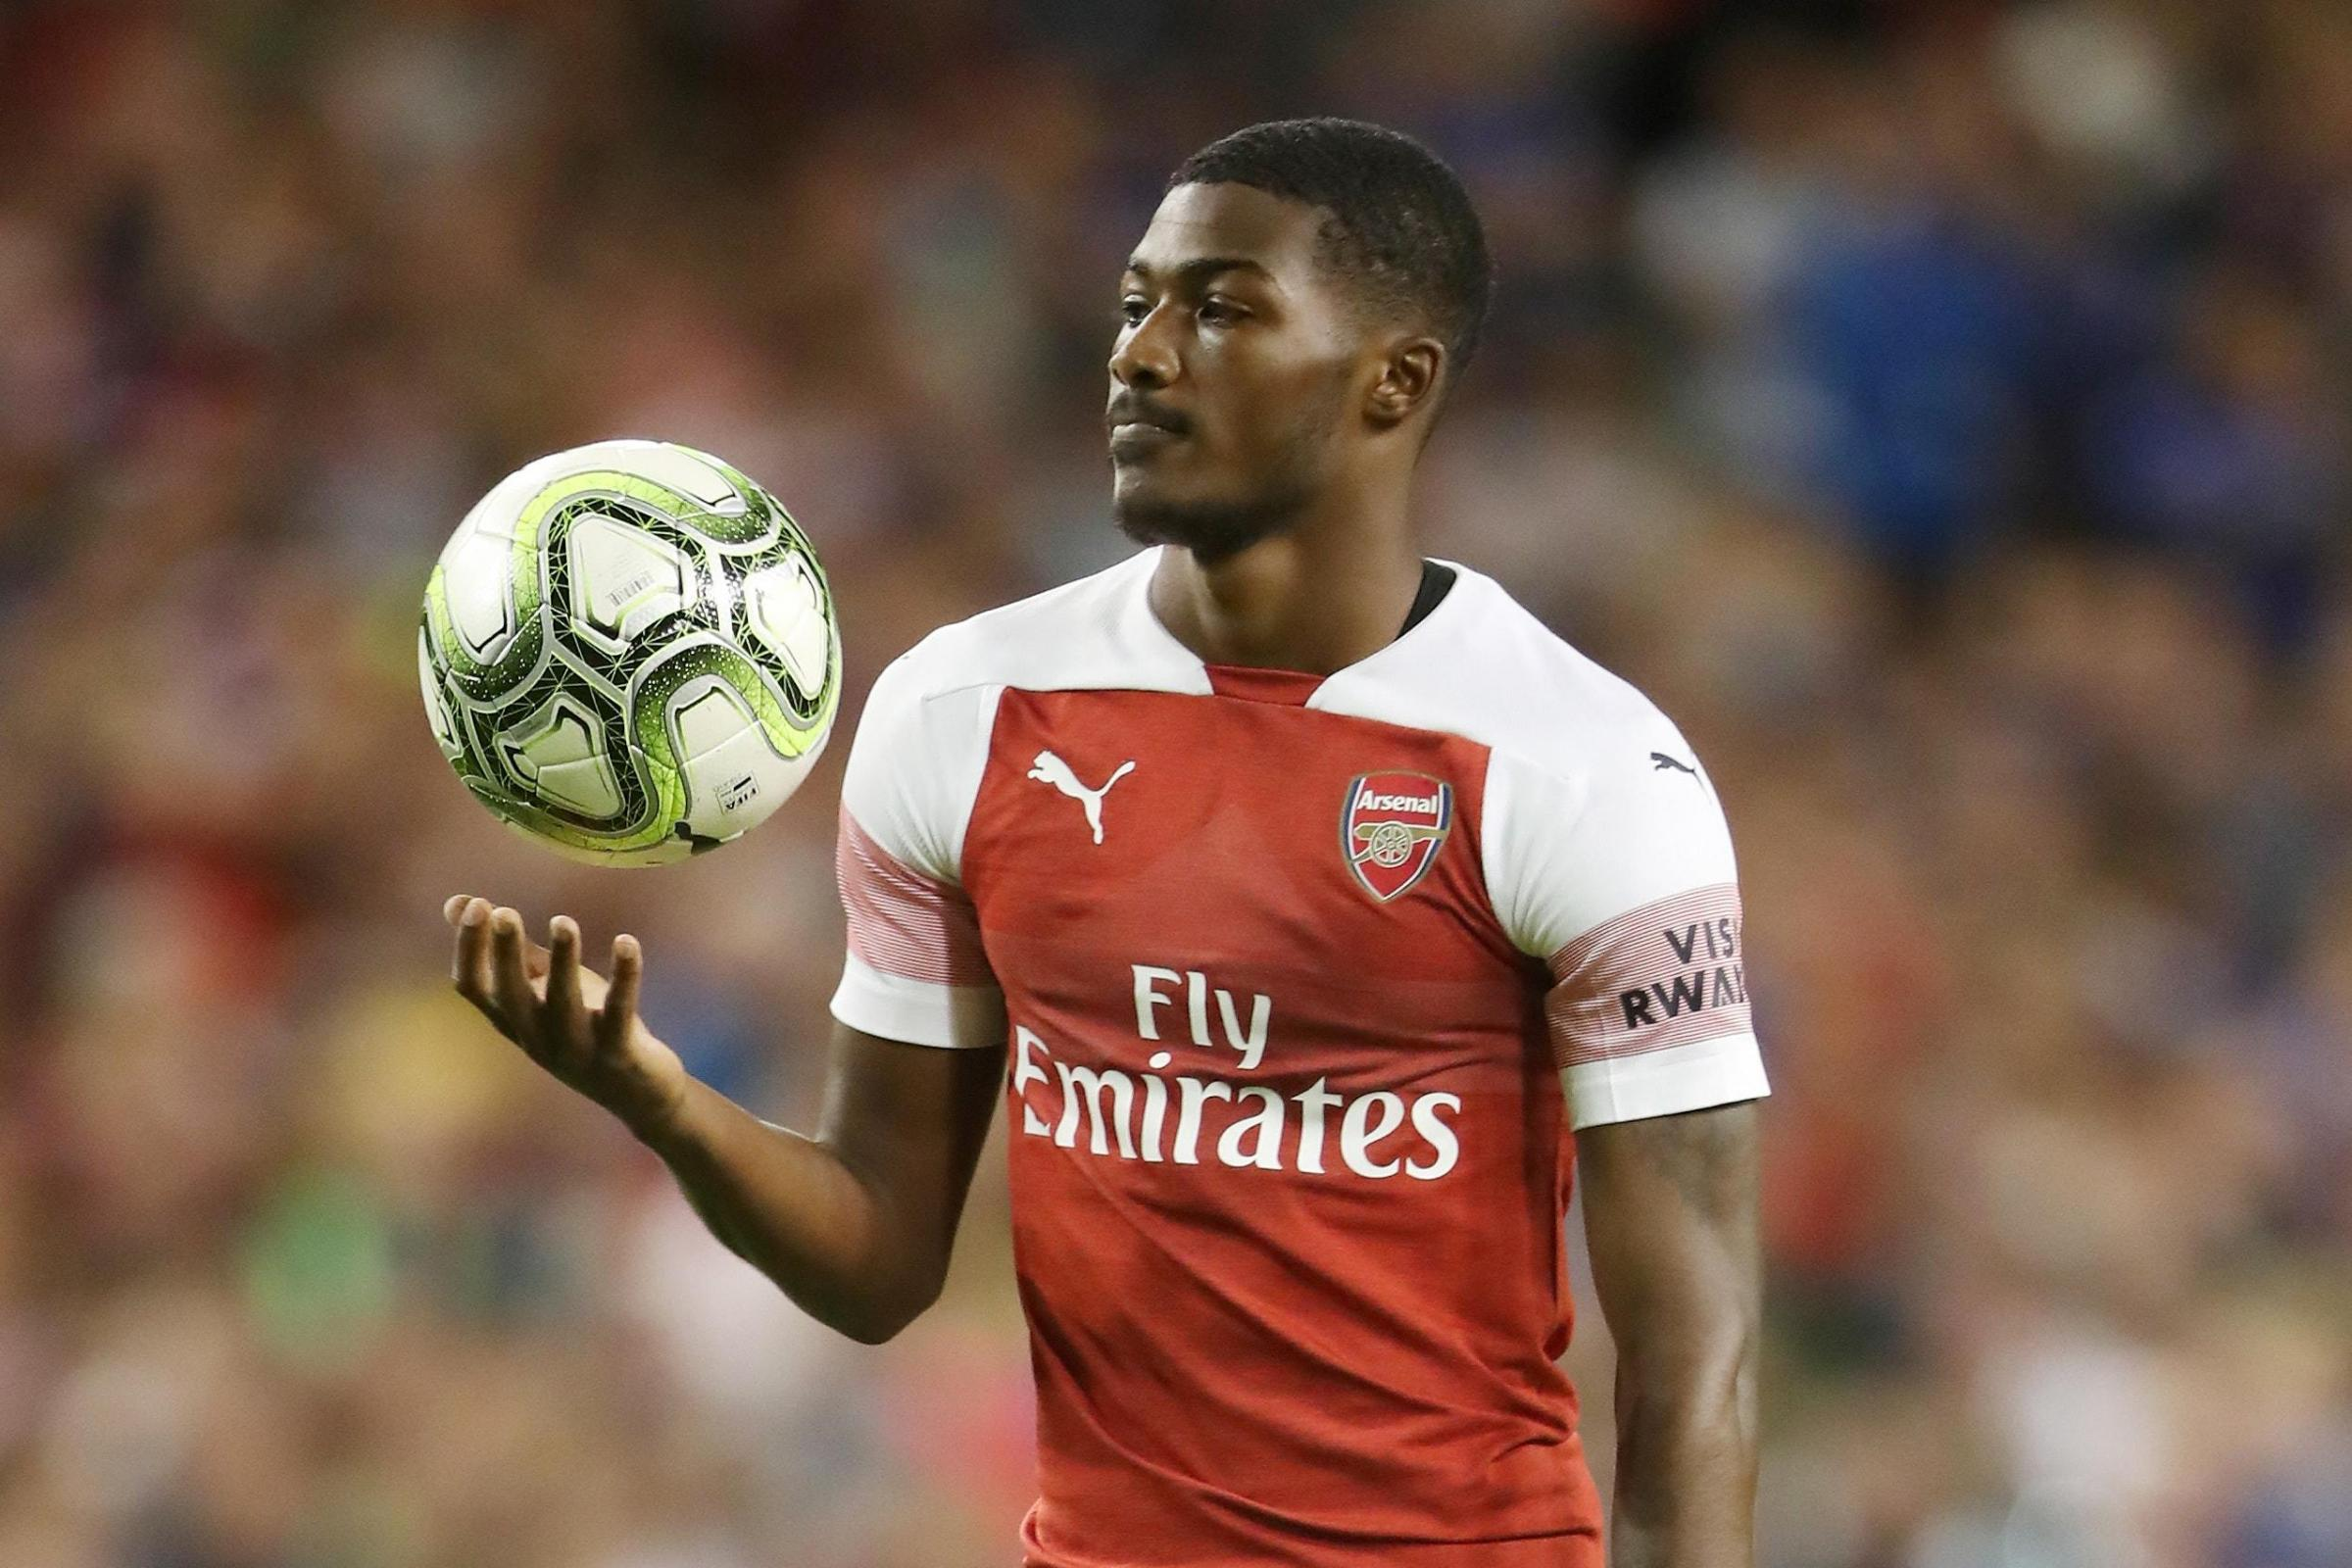 Ainsley Maitland-Niles admitted he has had previous experience of racism in football